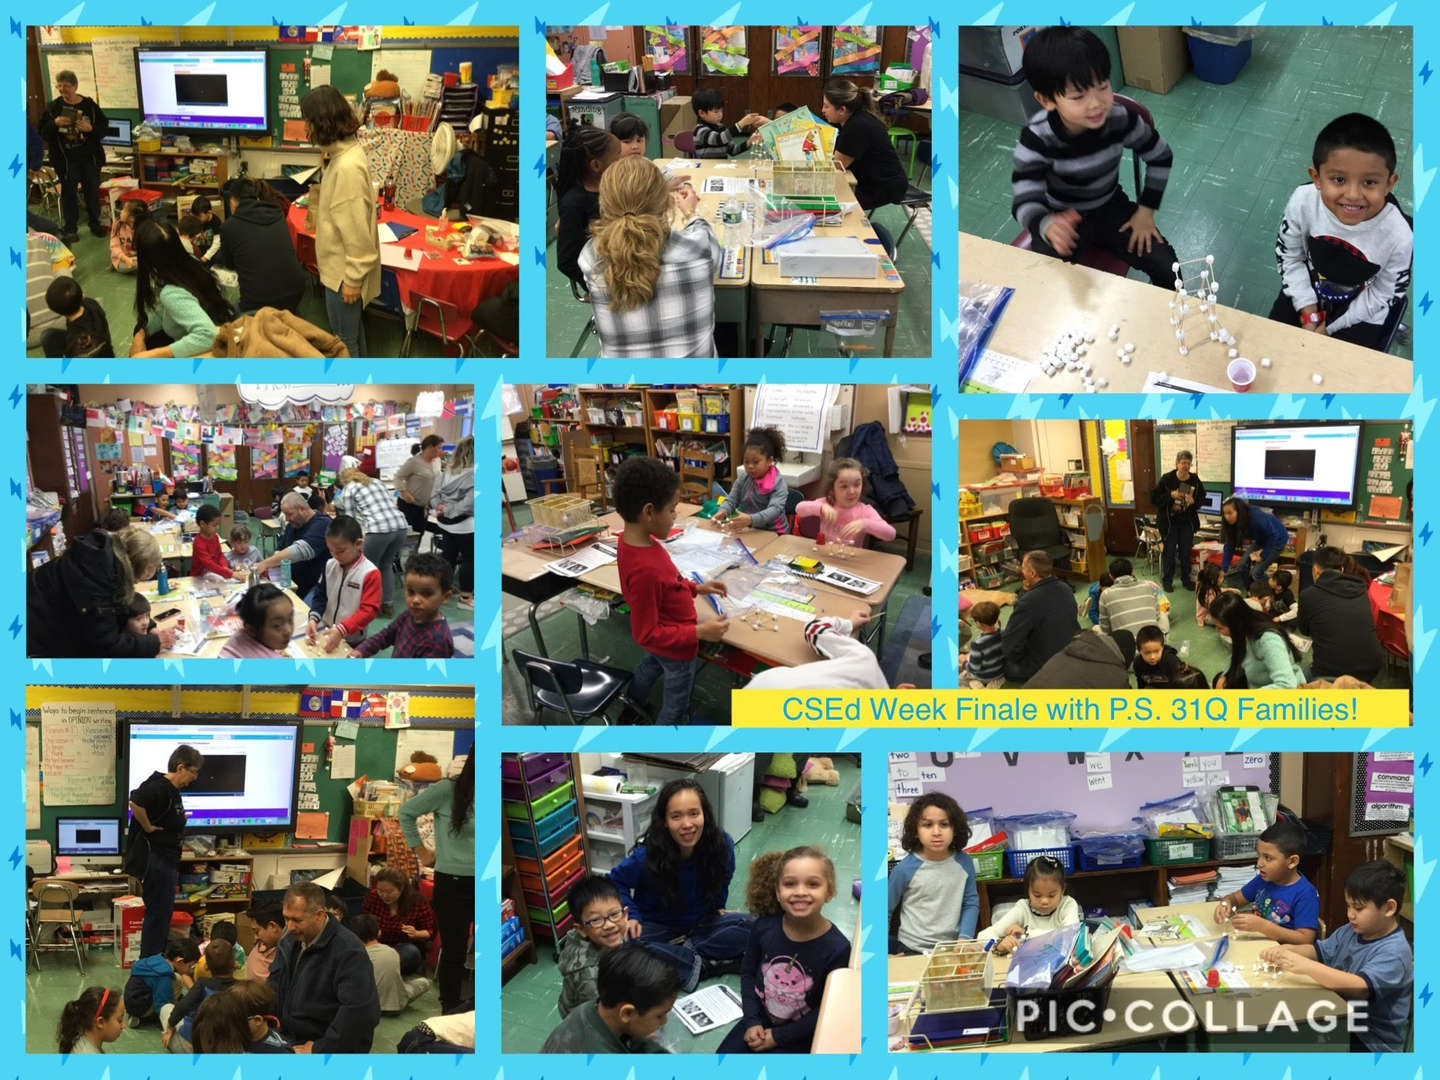 CSED Week Finale, Family Activity Collage 7